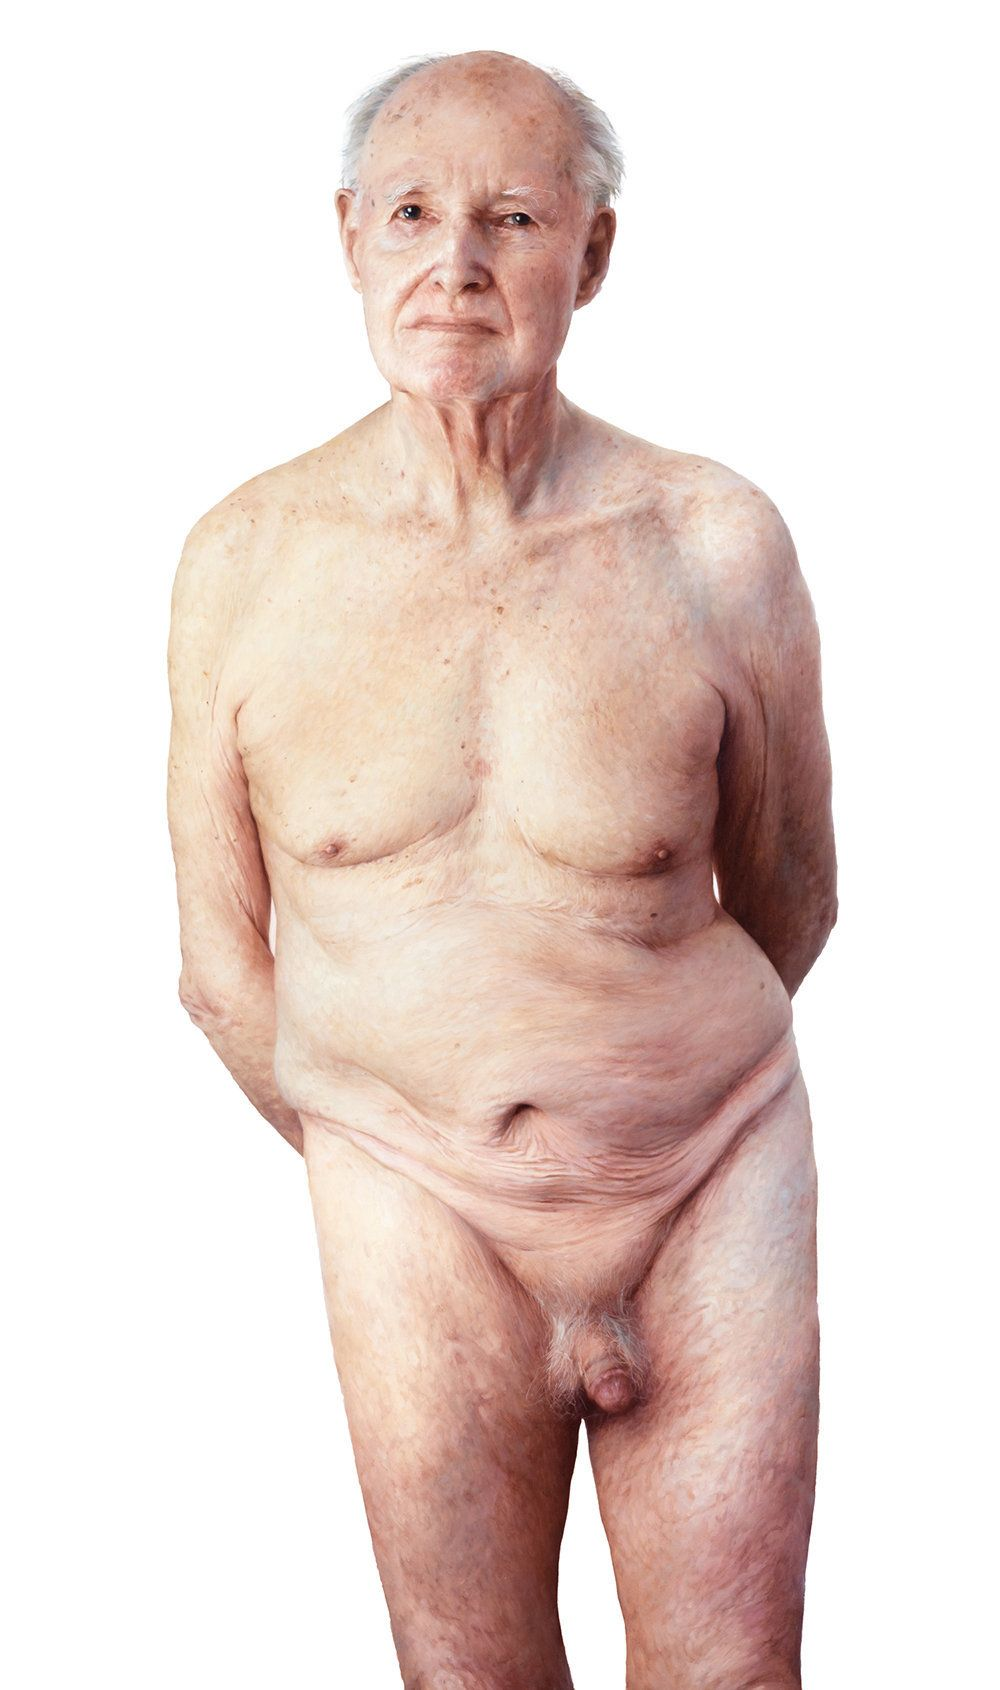 Nude pics of real people